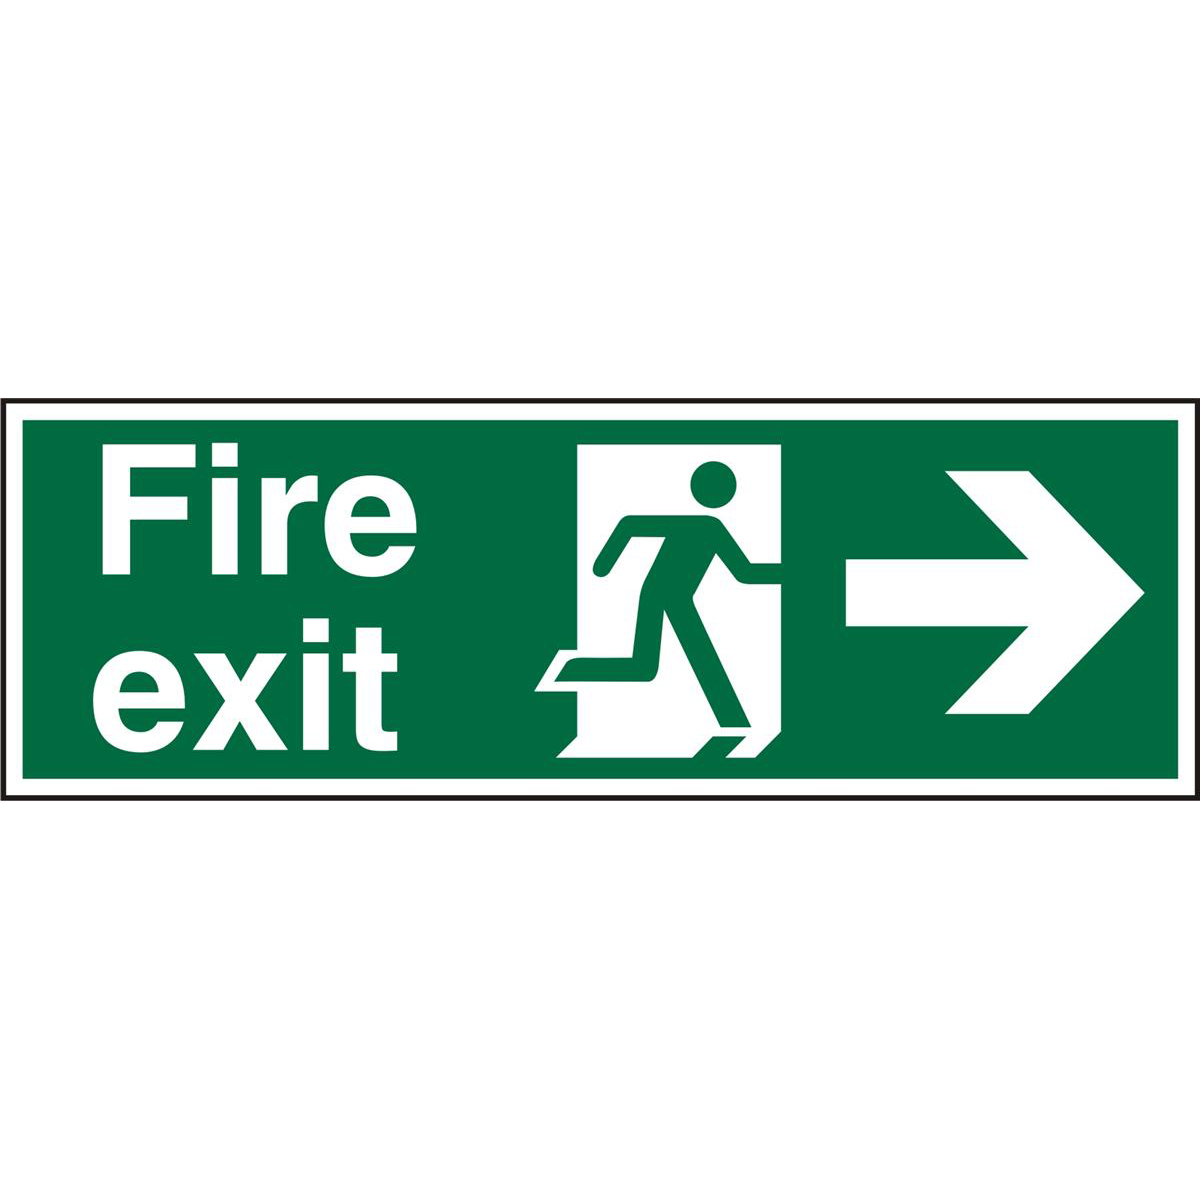 Prestige Sign 2mm DS 300x100 FireExit Man Running&Arrow Right Ref ACSP121300x100 Up to 10 Day Leadtime